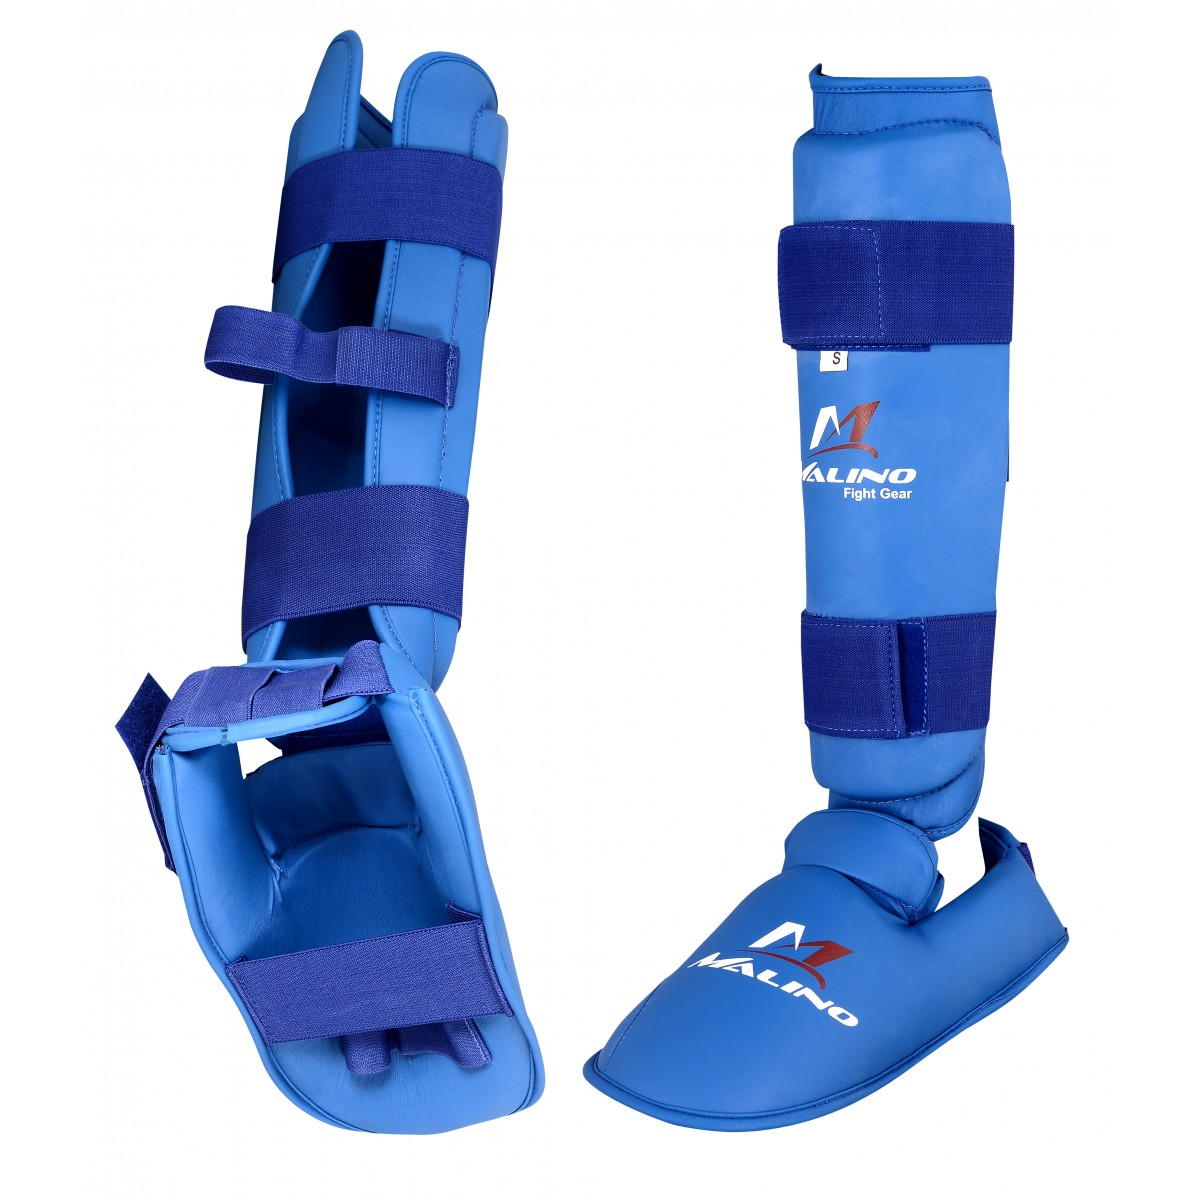 Malino Blue PU Shin Pads with Removable Instep Foot